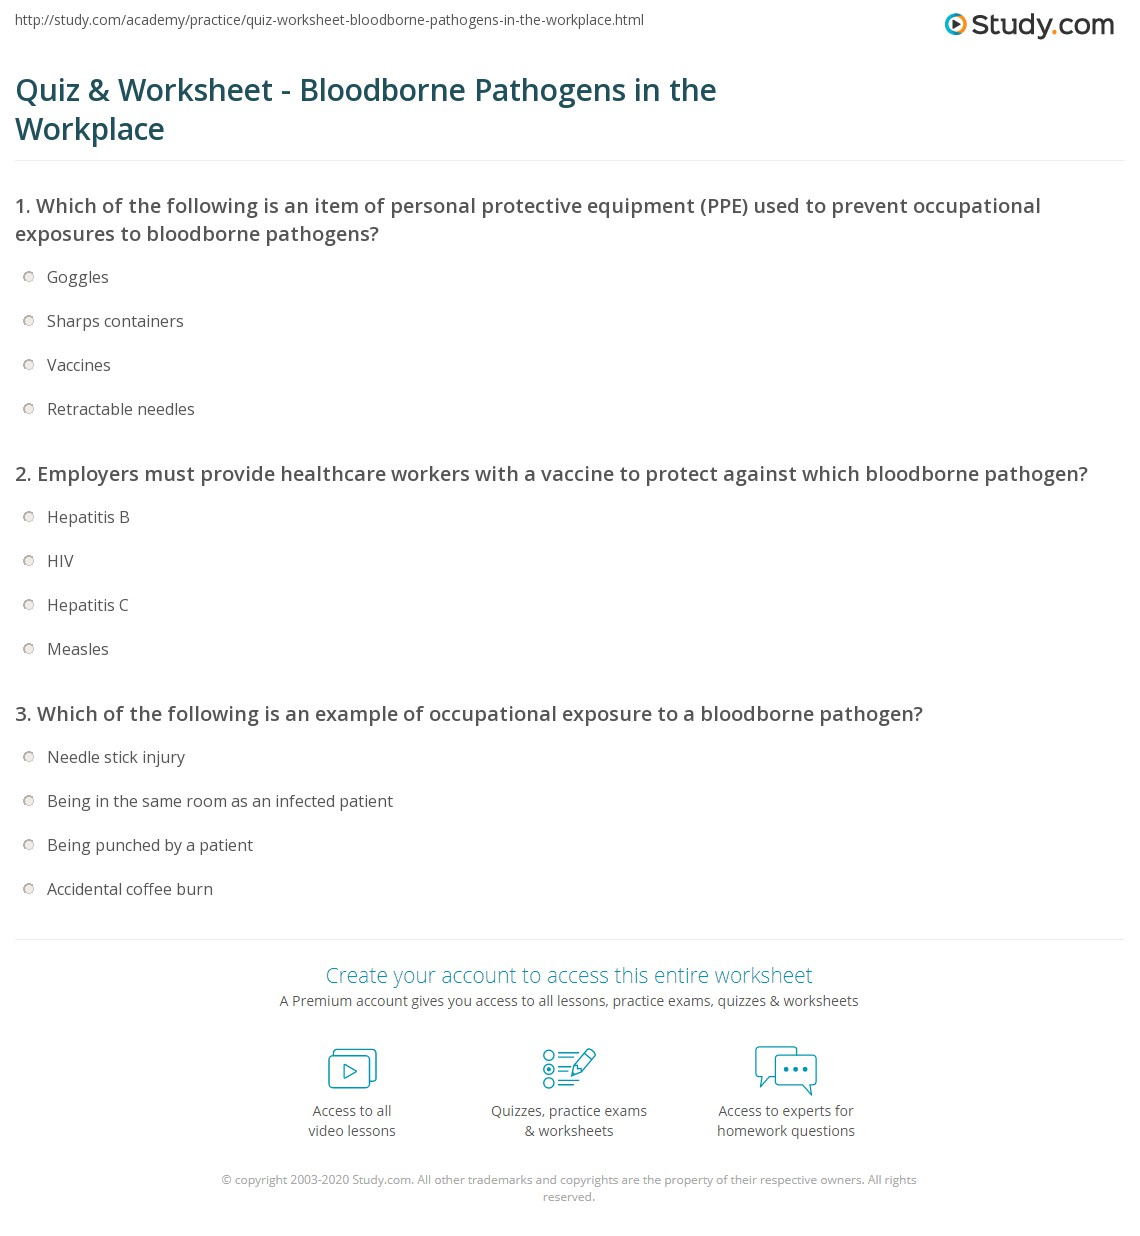 Quiz worksheet bloodborne pathogens in the workplace study print occupational exposure to bloodborne pathogens worksheet xflitez Gallery